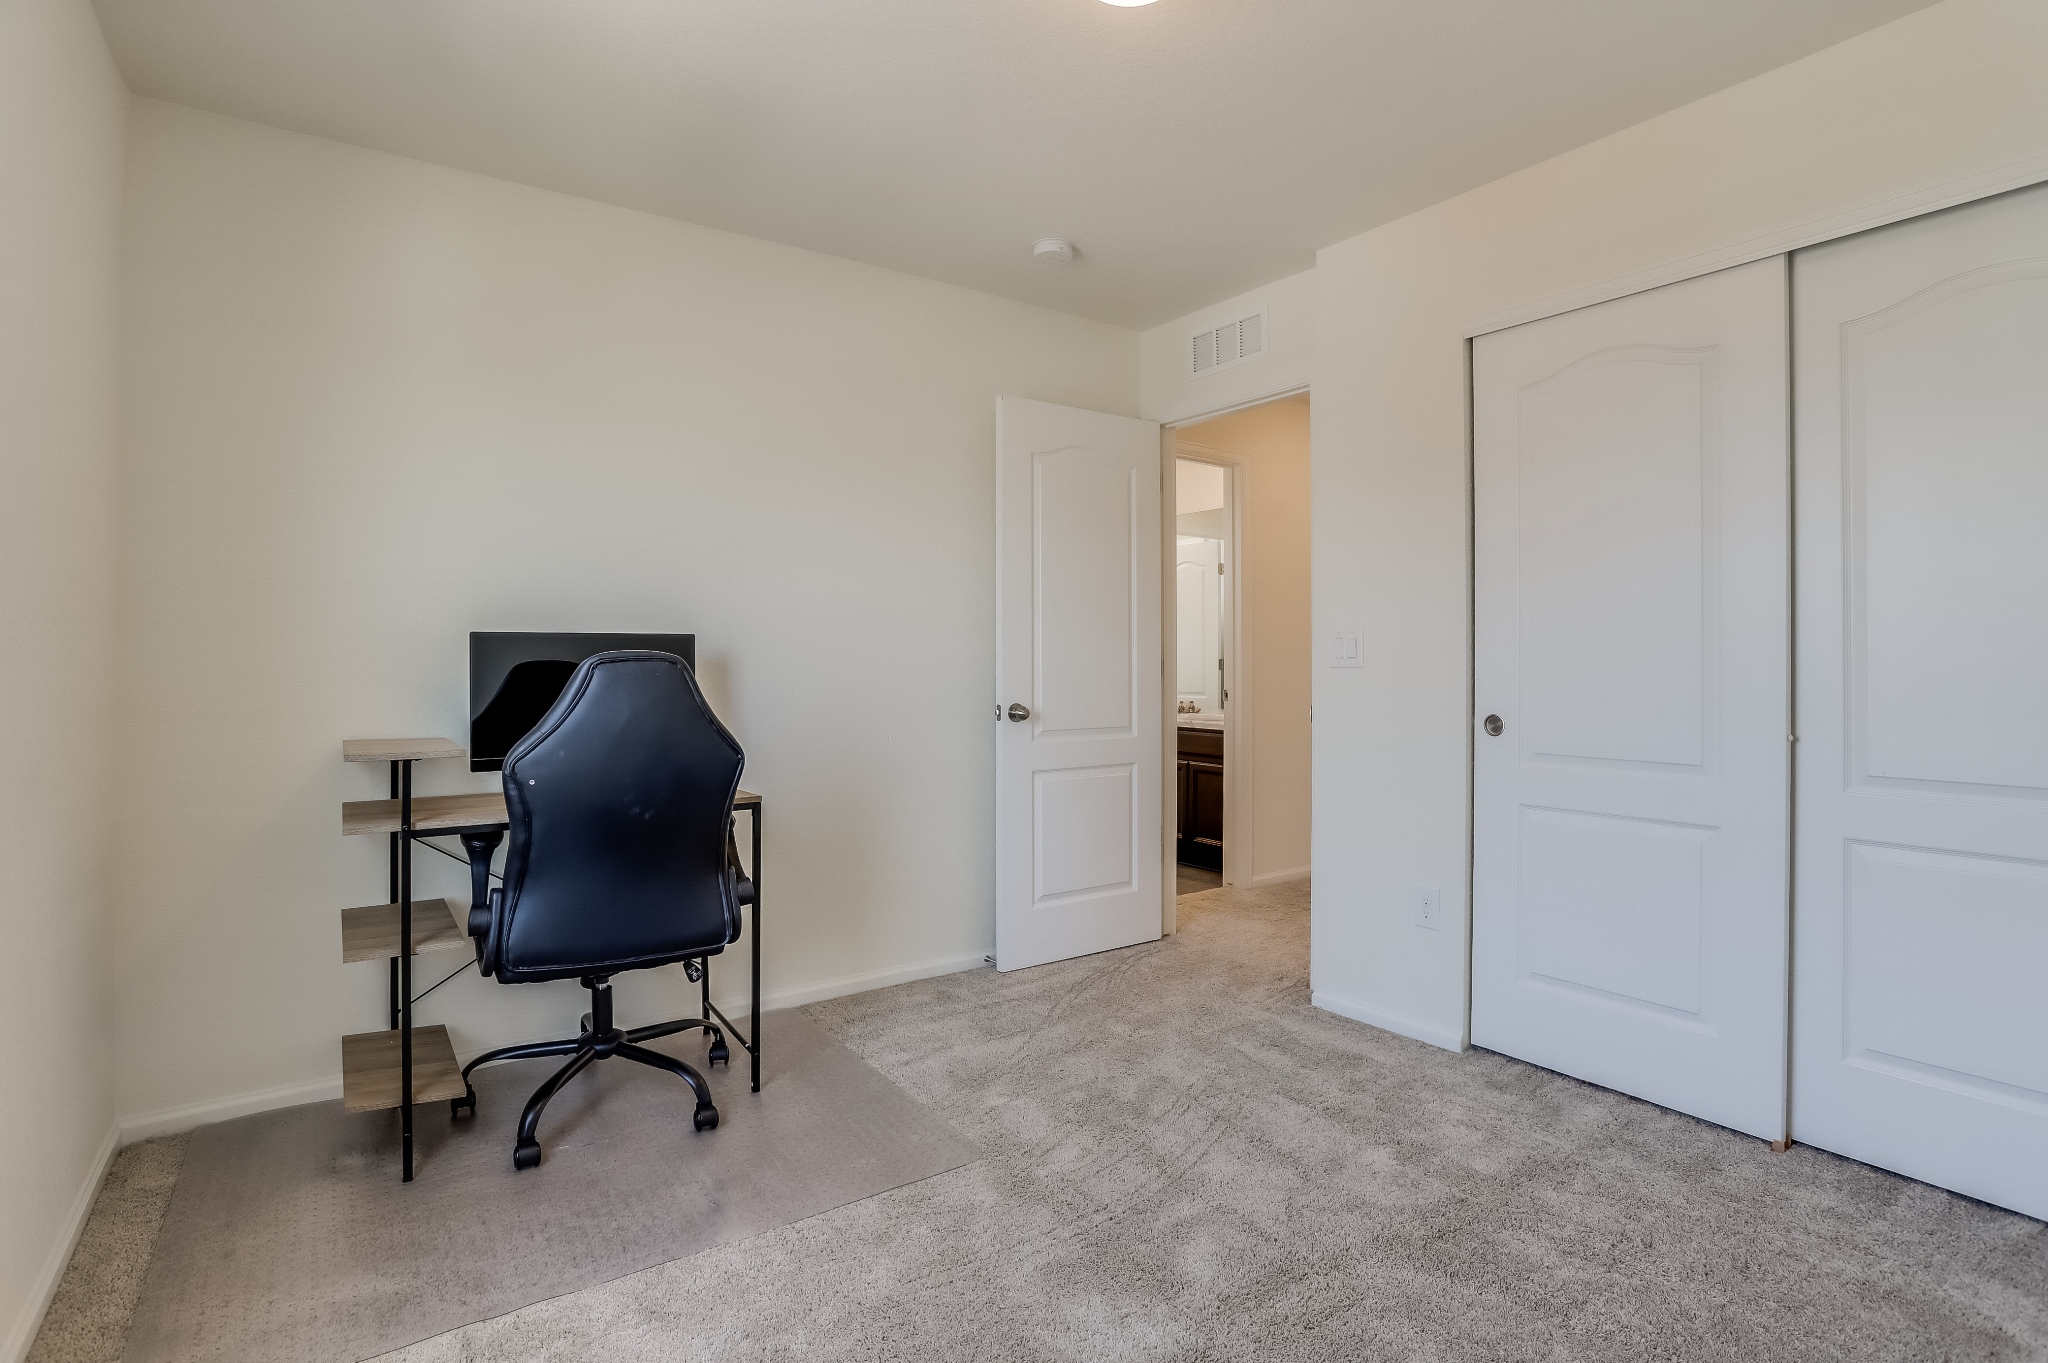 REAL ESTATE LISTING: 12813 Clearview St Firestone Bedroom #3